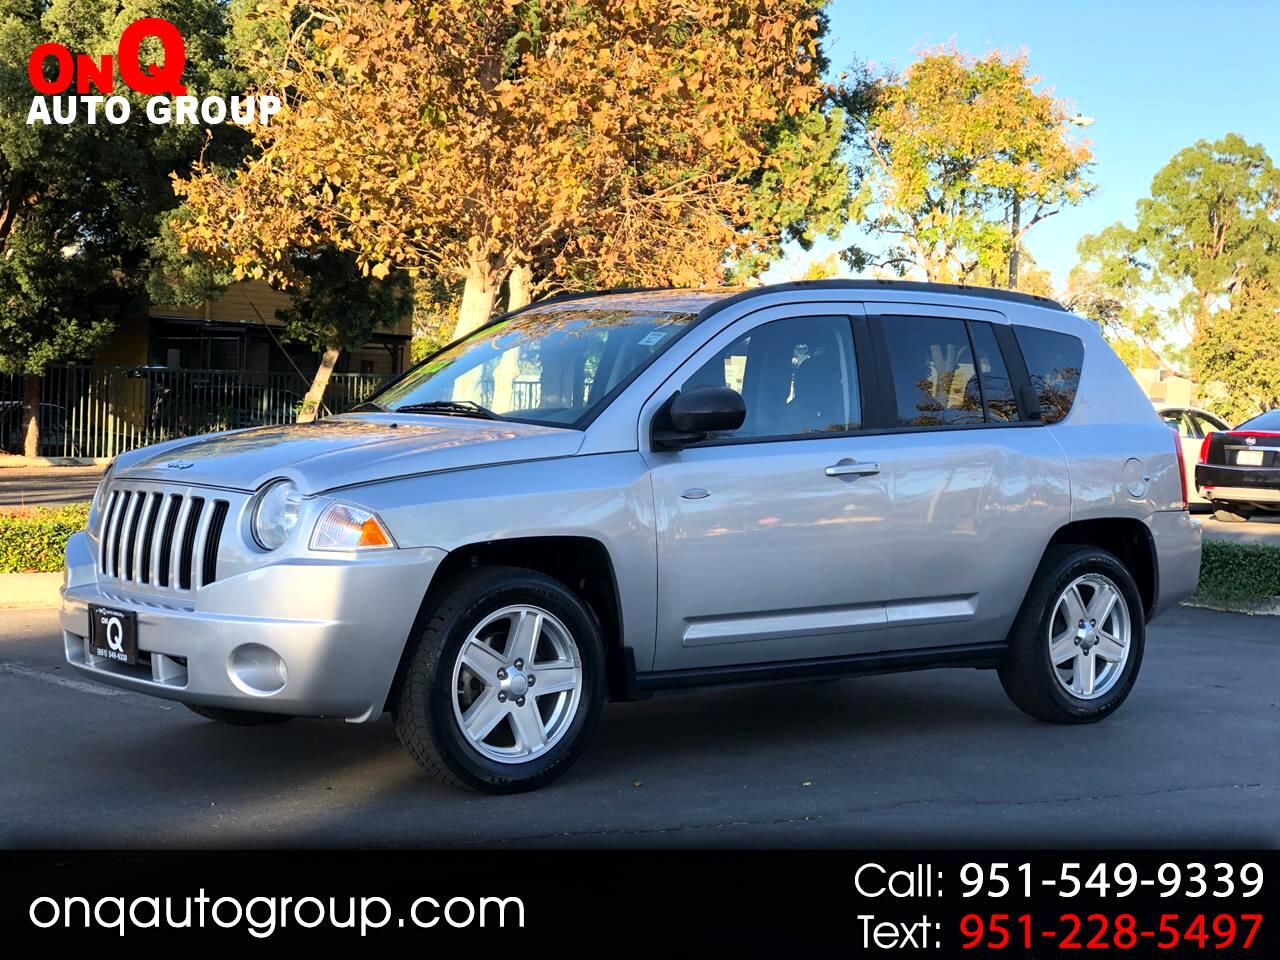 Jeep Compass FWD 4dr Latitude 2010